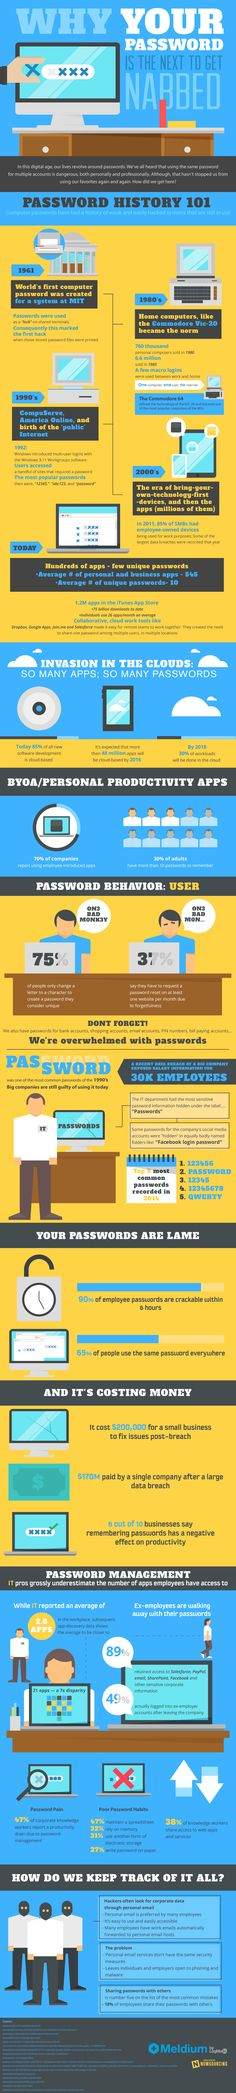 Why Your Password is Hackerbait (Infographic). Feeling hopeful about passwords? This infographic will fix that in a hurry!